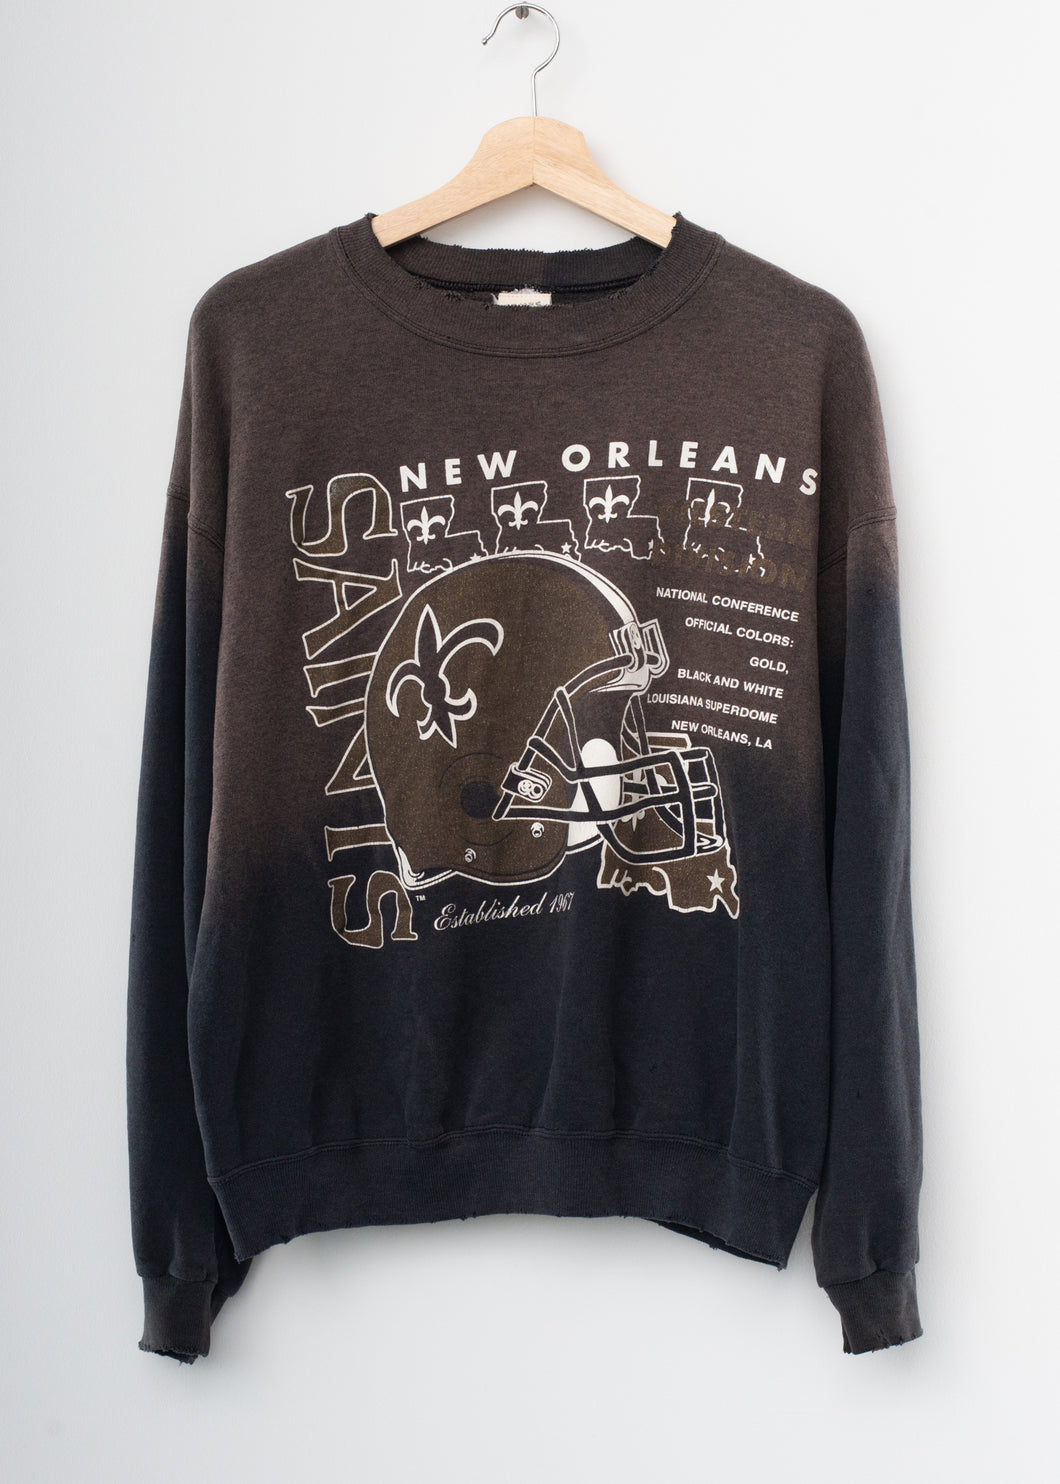 New Orleans Saints Sweatshirt